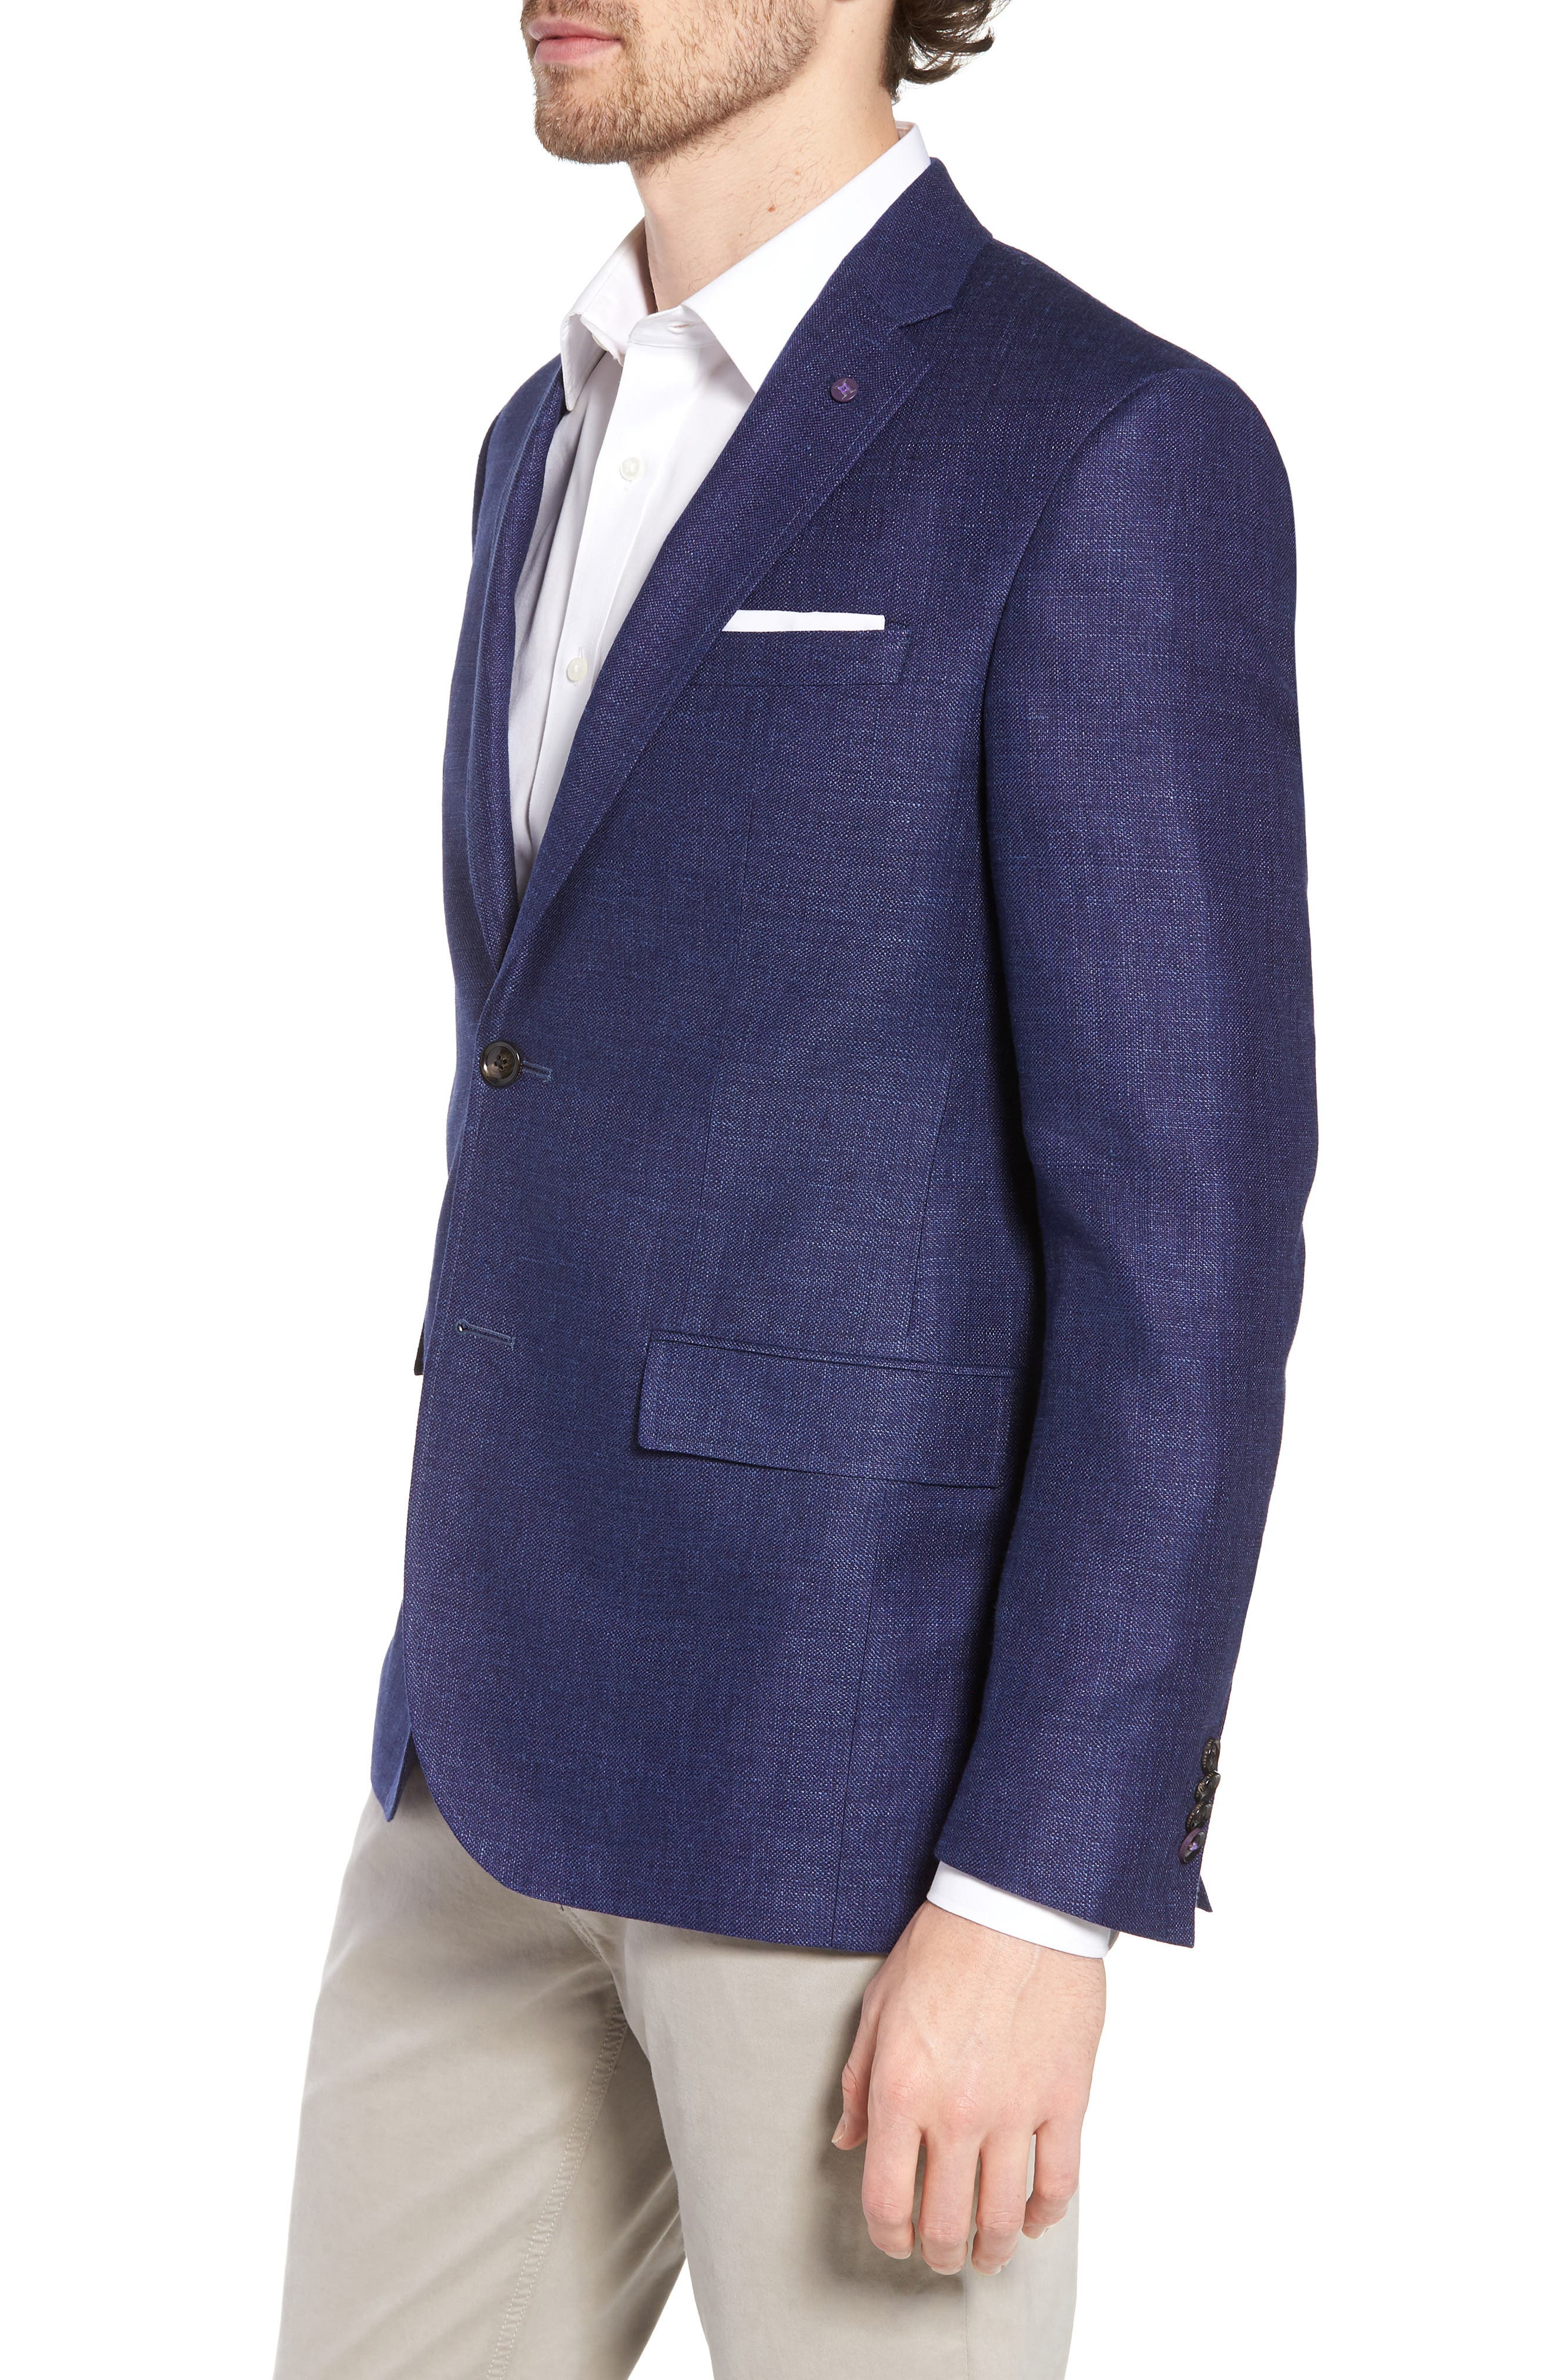 Jay Trim Fit Linen & Wool Blazer,                             Alternate thumbnail 3, color,